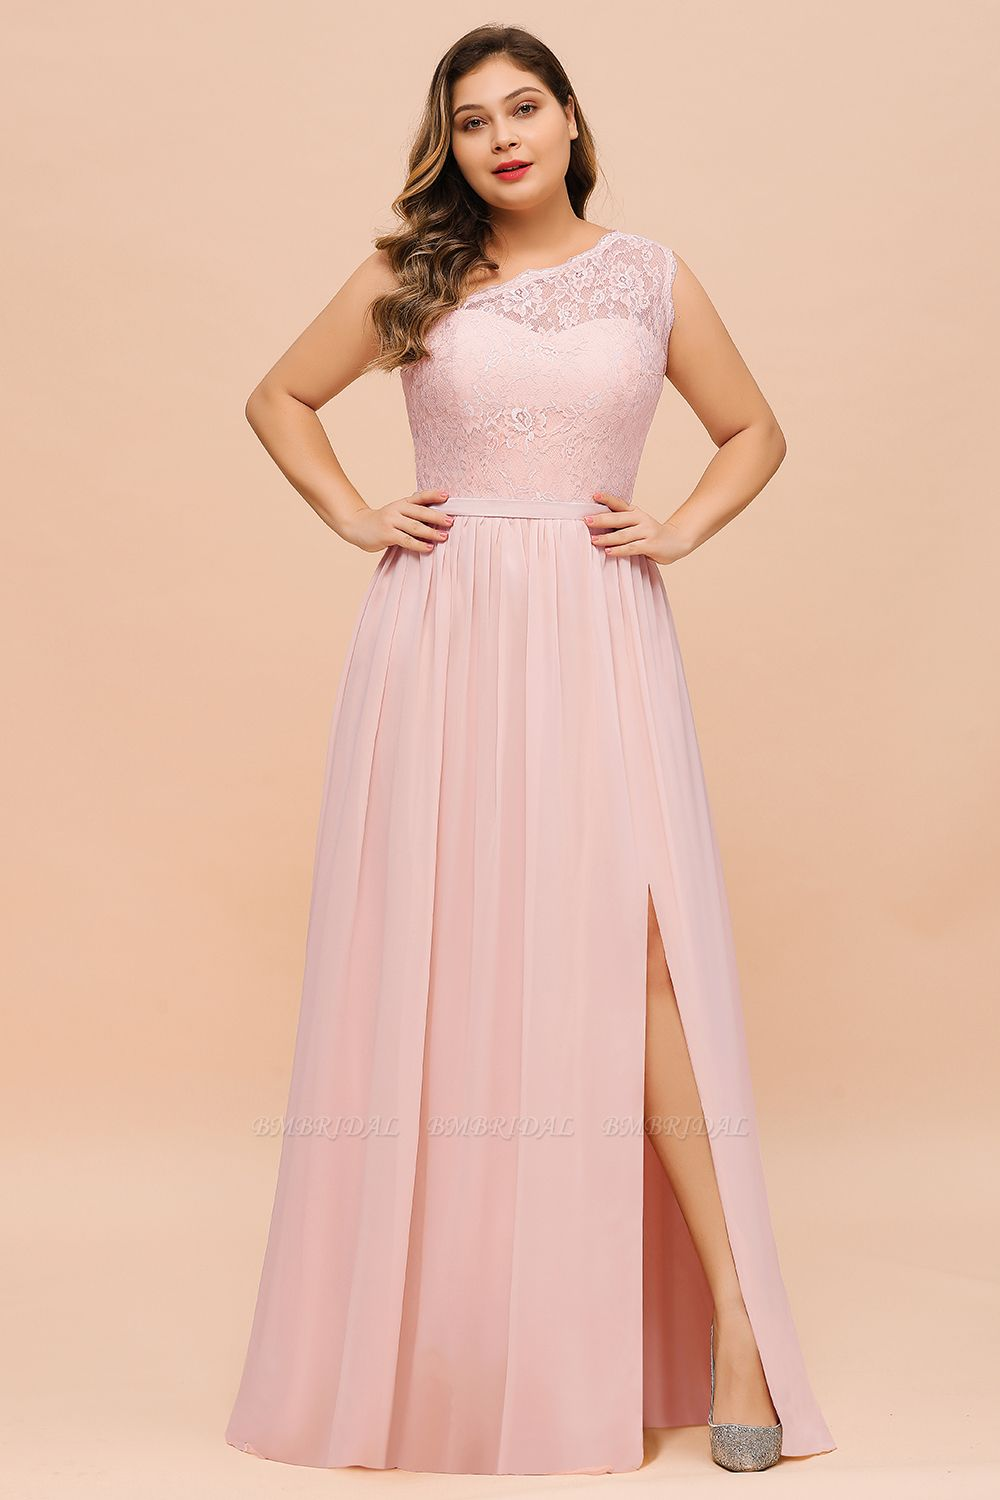 Chic One-Shoulder Pink Lace Bridesmaid Dresses with Slit